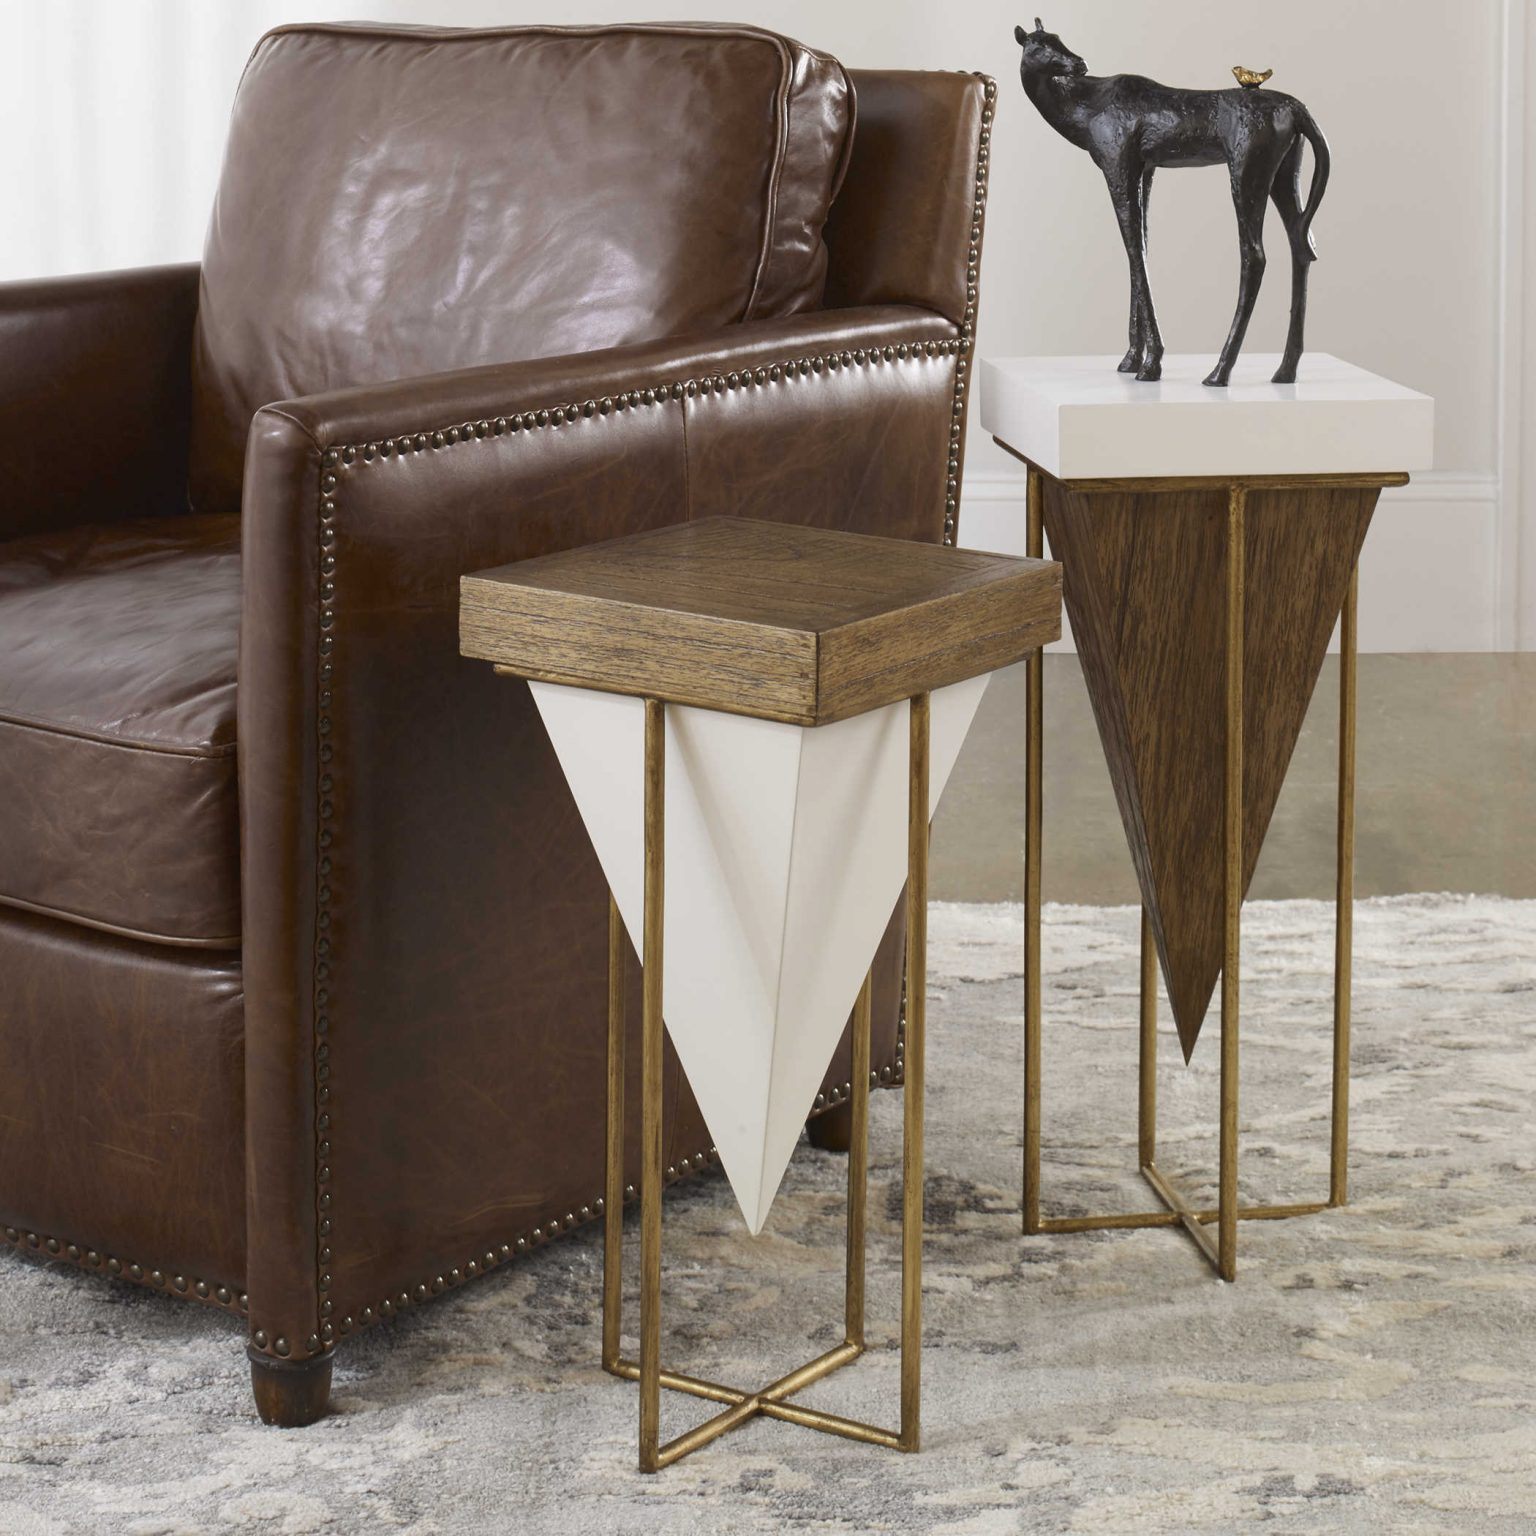 Accent tables featuring geometric shapes and mixed wood give a modern-retro feel to your decor